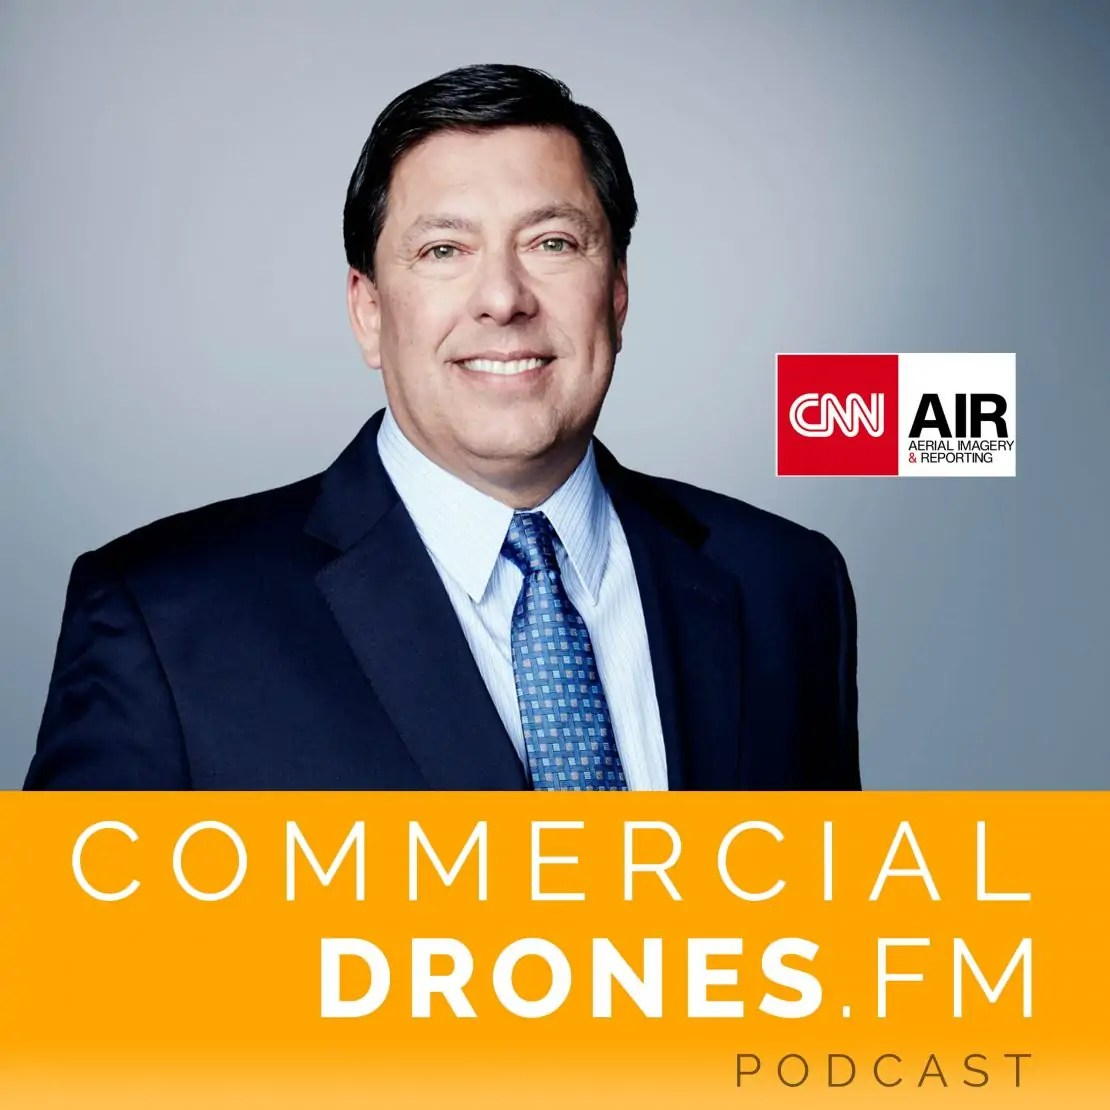 Cnn Cnn Air With Greg Agvent